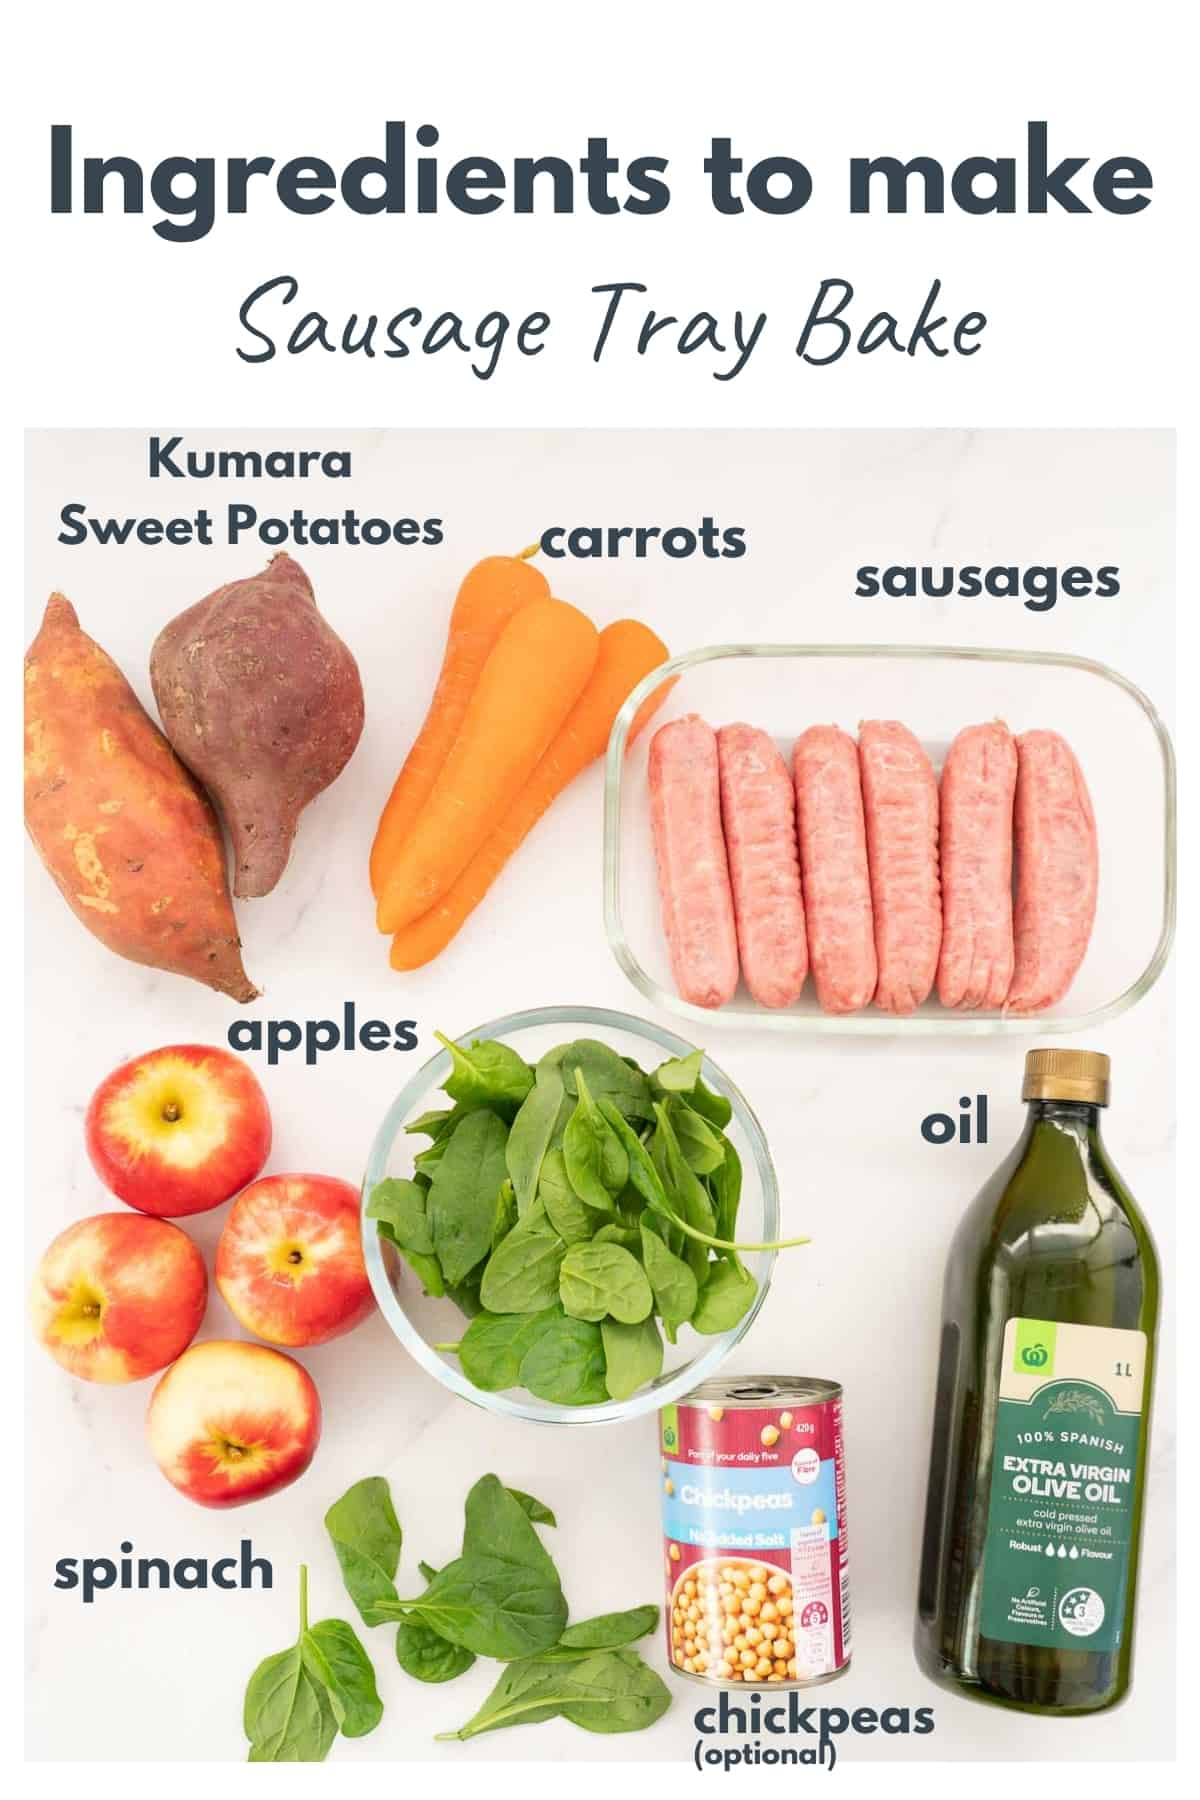 Ingredients for sausage tray bake laid out on a bench top with text overlay.